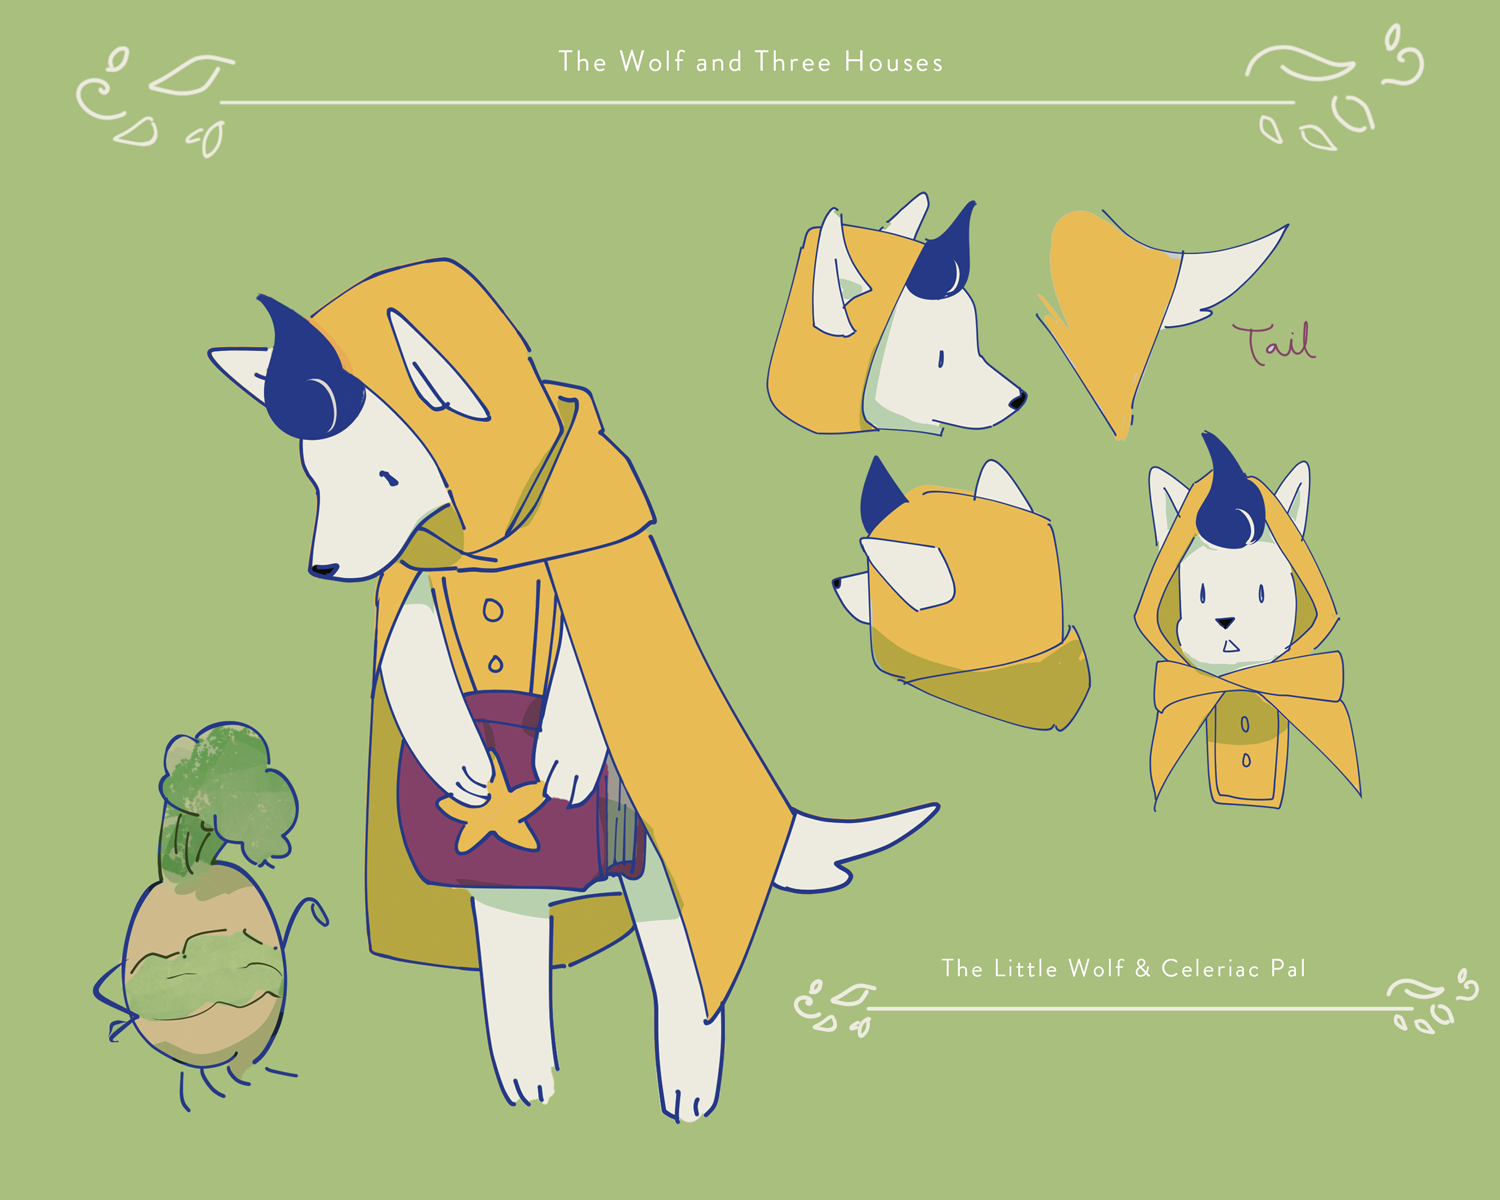 wolf-character-sheet-1.png